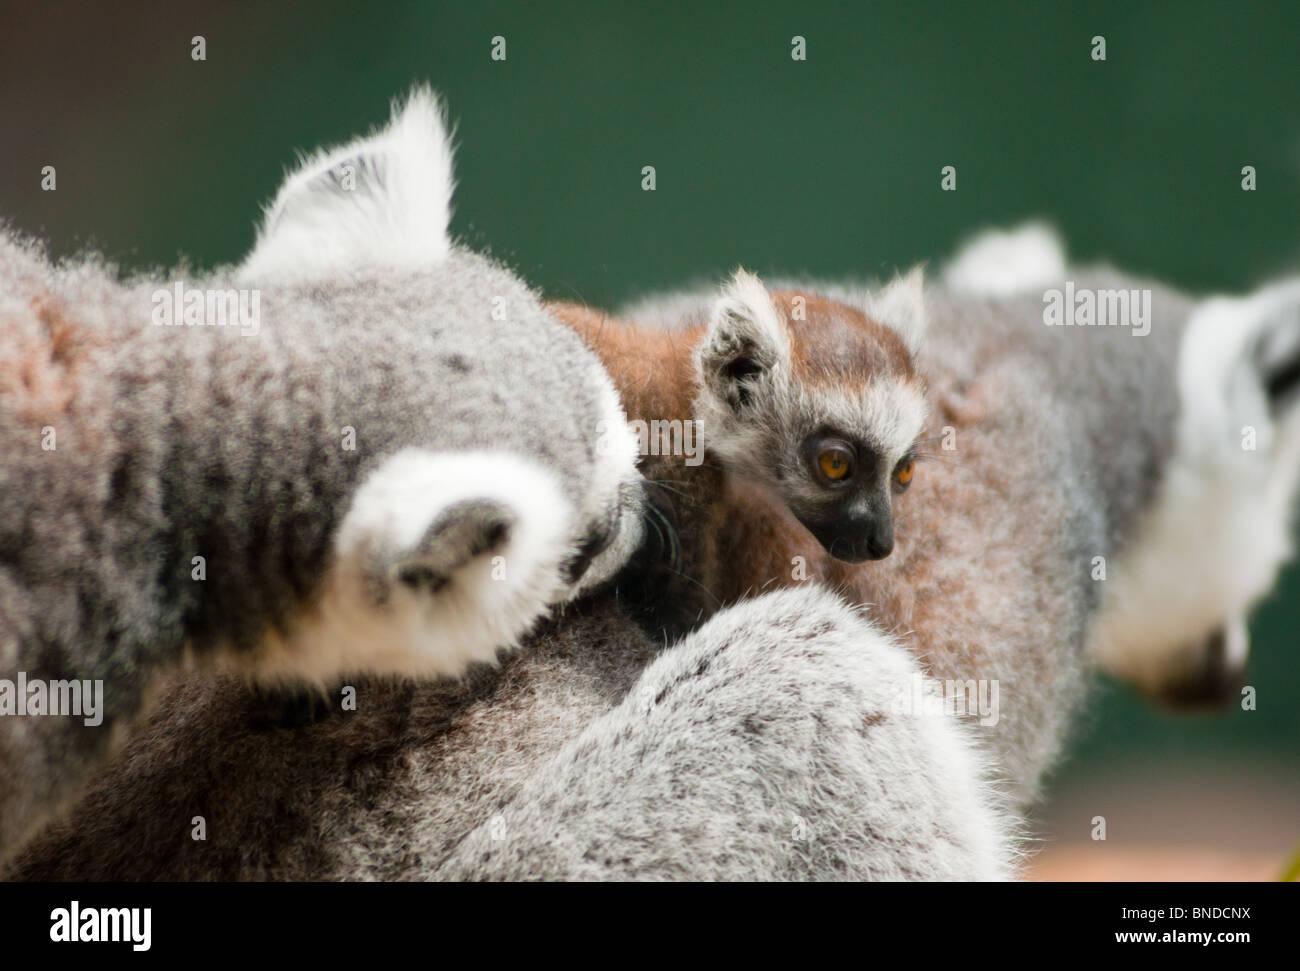 Baby Lemur with mum and dad - Stock Image